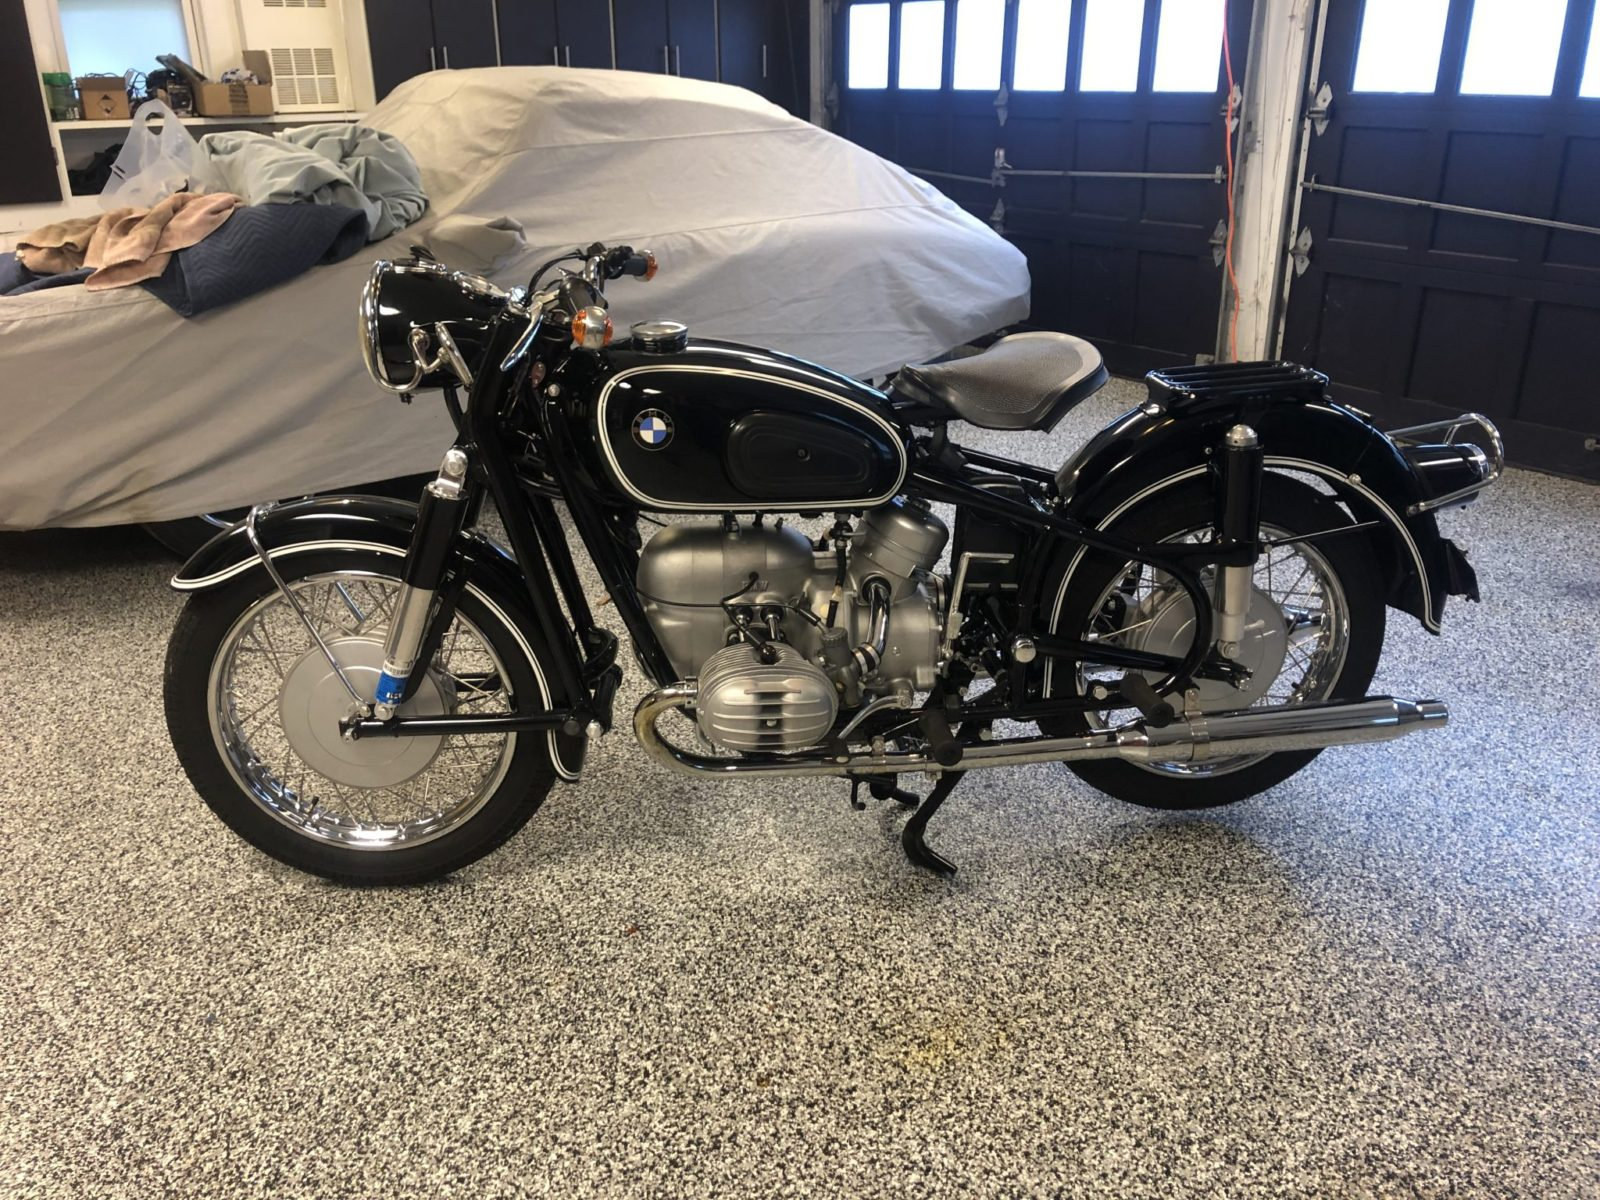 this-rejuvenated-1965-bmw-r50/2-hosts-fresh-pipes-and-overhauled-electrics